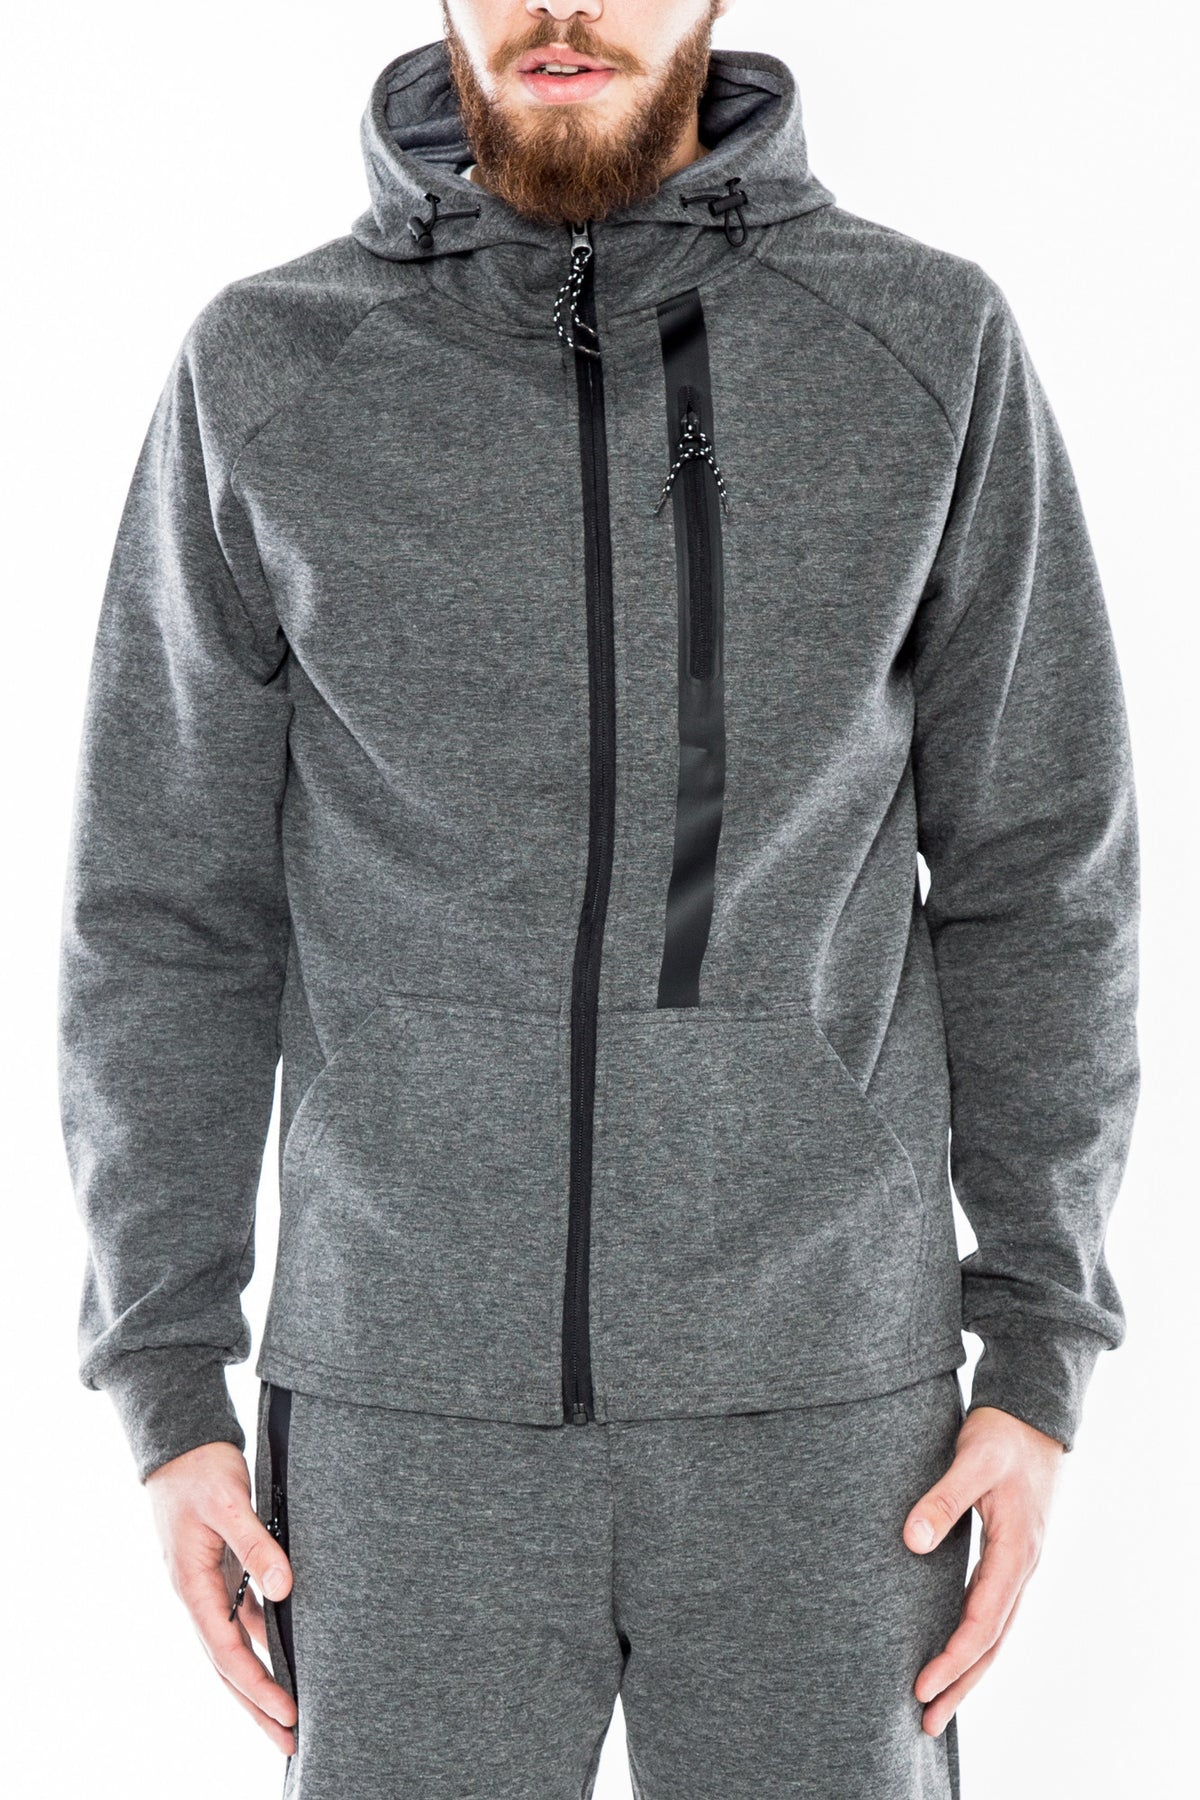 Tech Zip Hood H5051377-GRY - cosign1975